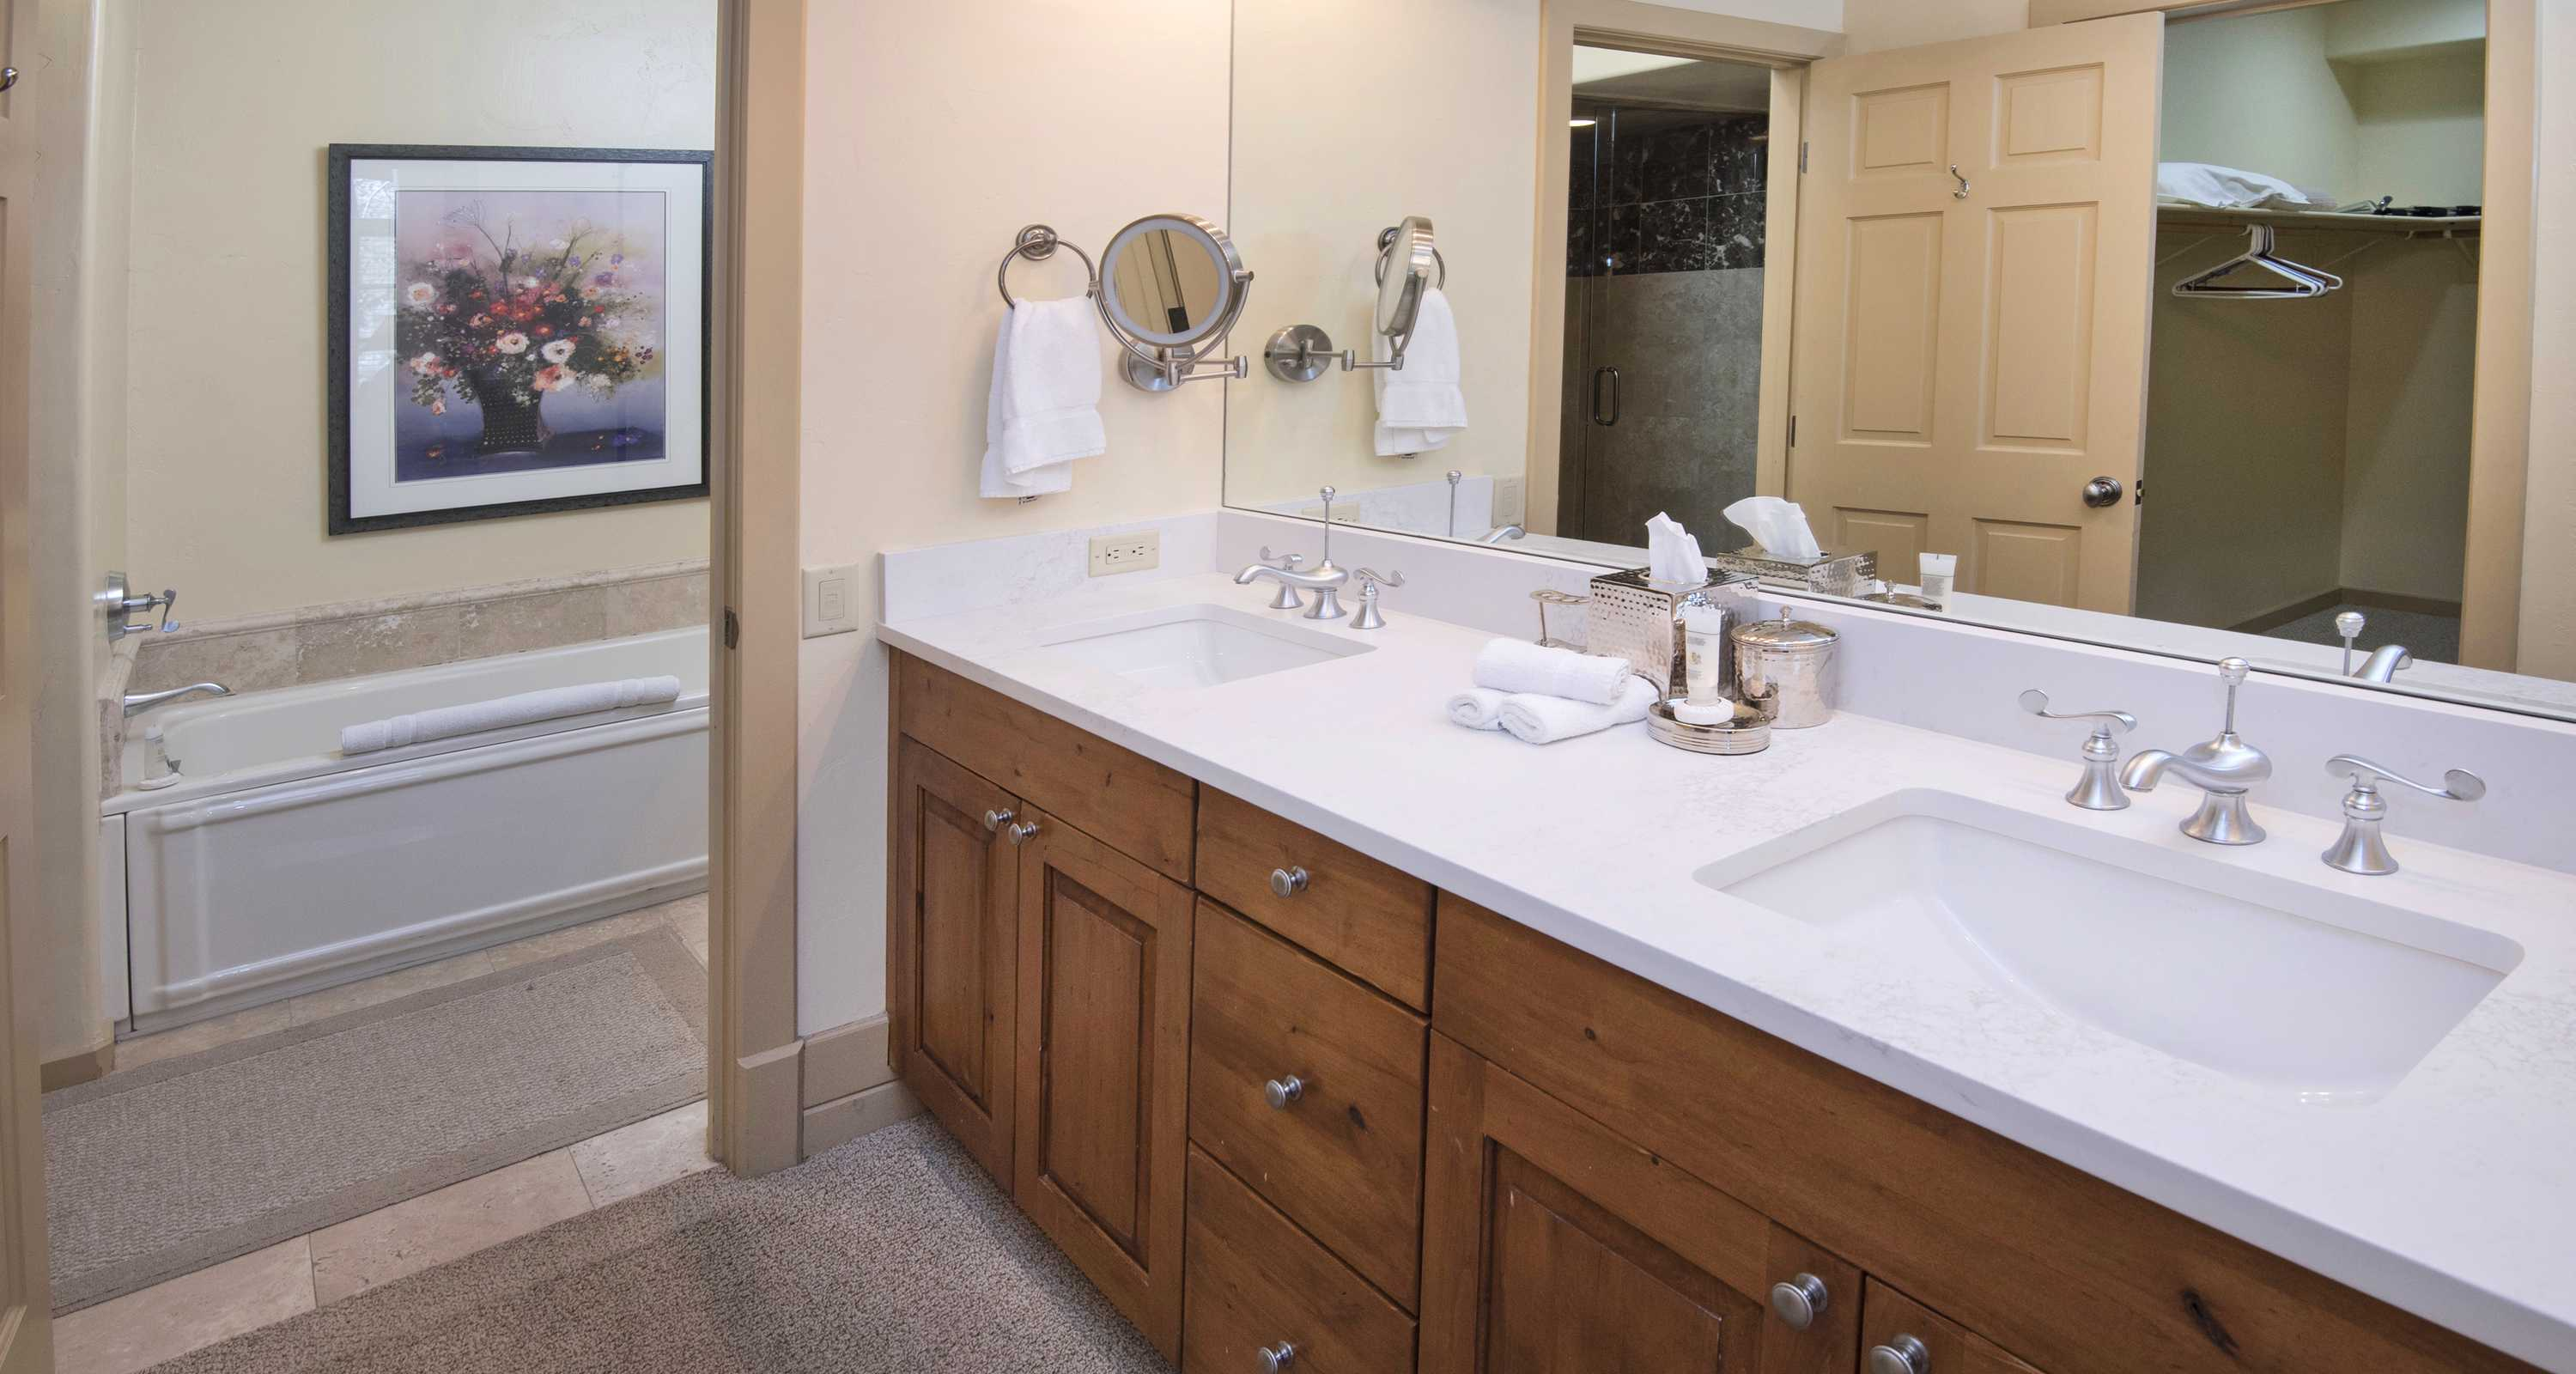 Double sinks for double speed in the morning